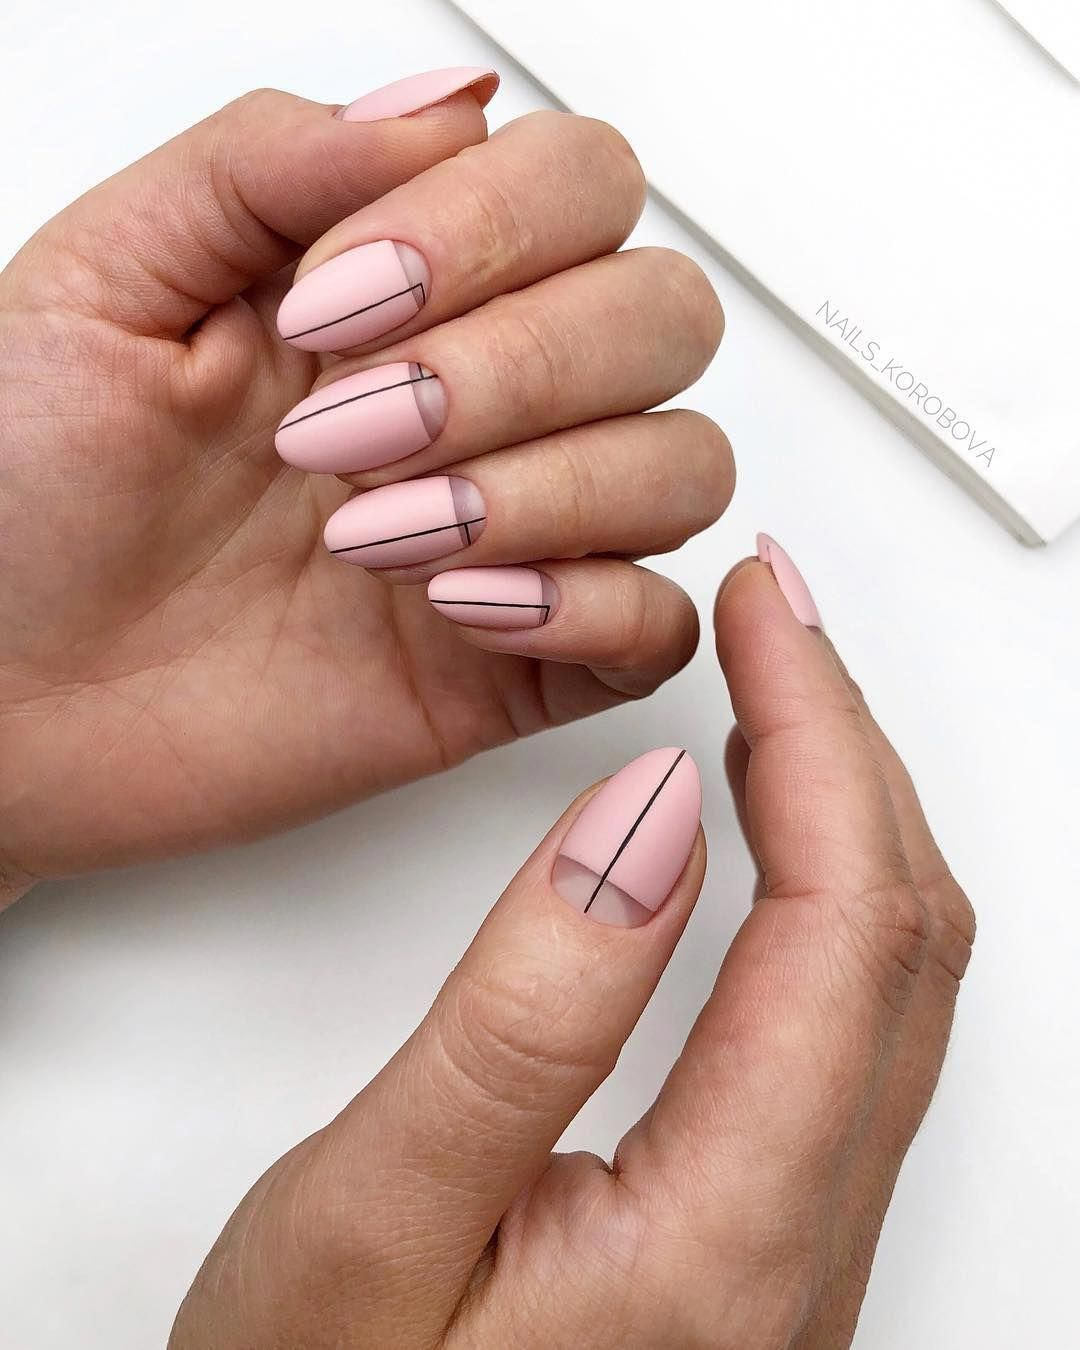 Matte Pink Nails With Thin Black Line Art And Negative Space Design Re Pinned By Breanna L Follow Me And Ne Matte Pink Nails Minimalist Nails Ivory Nails